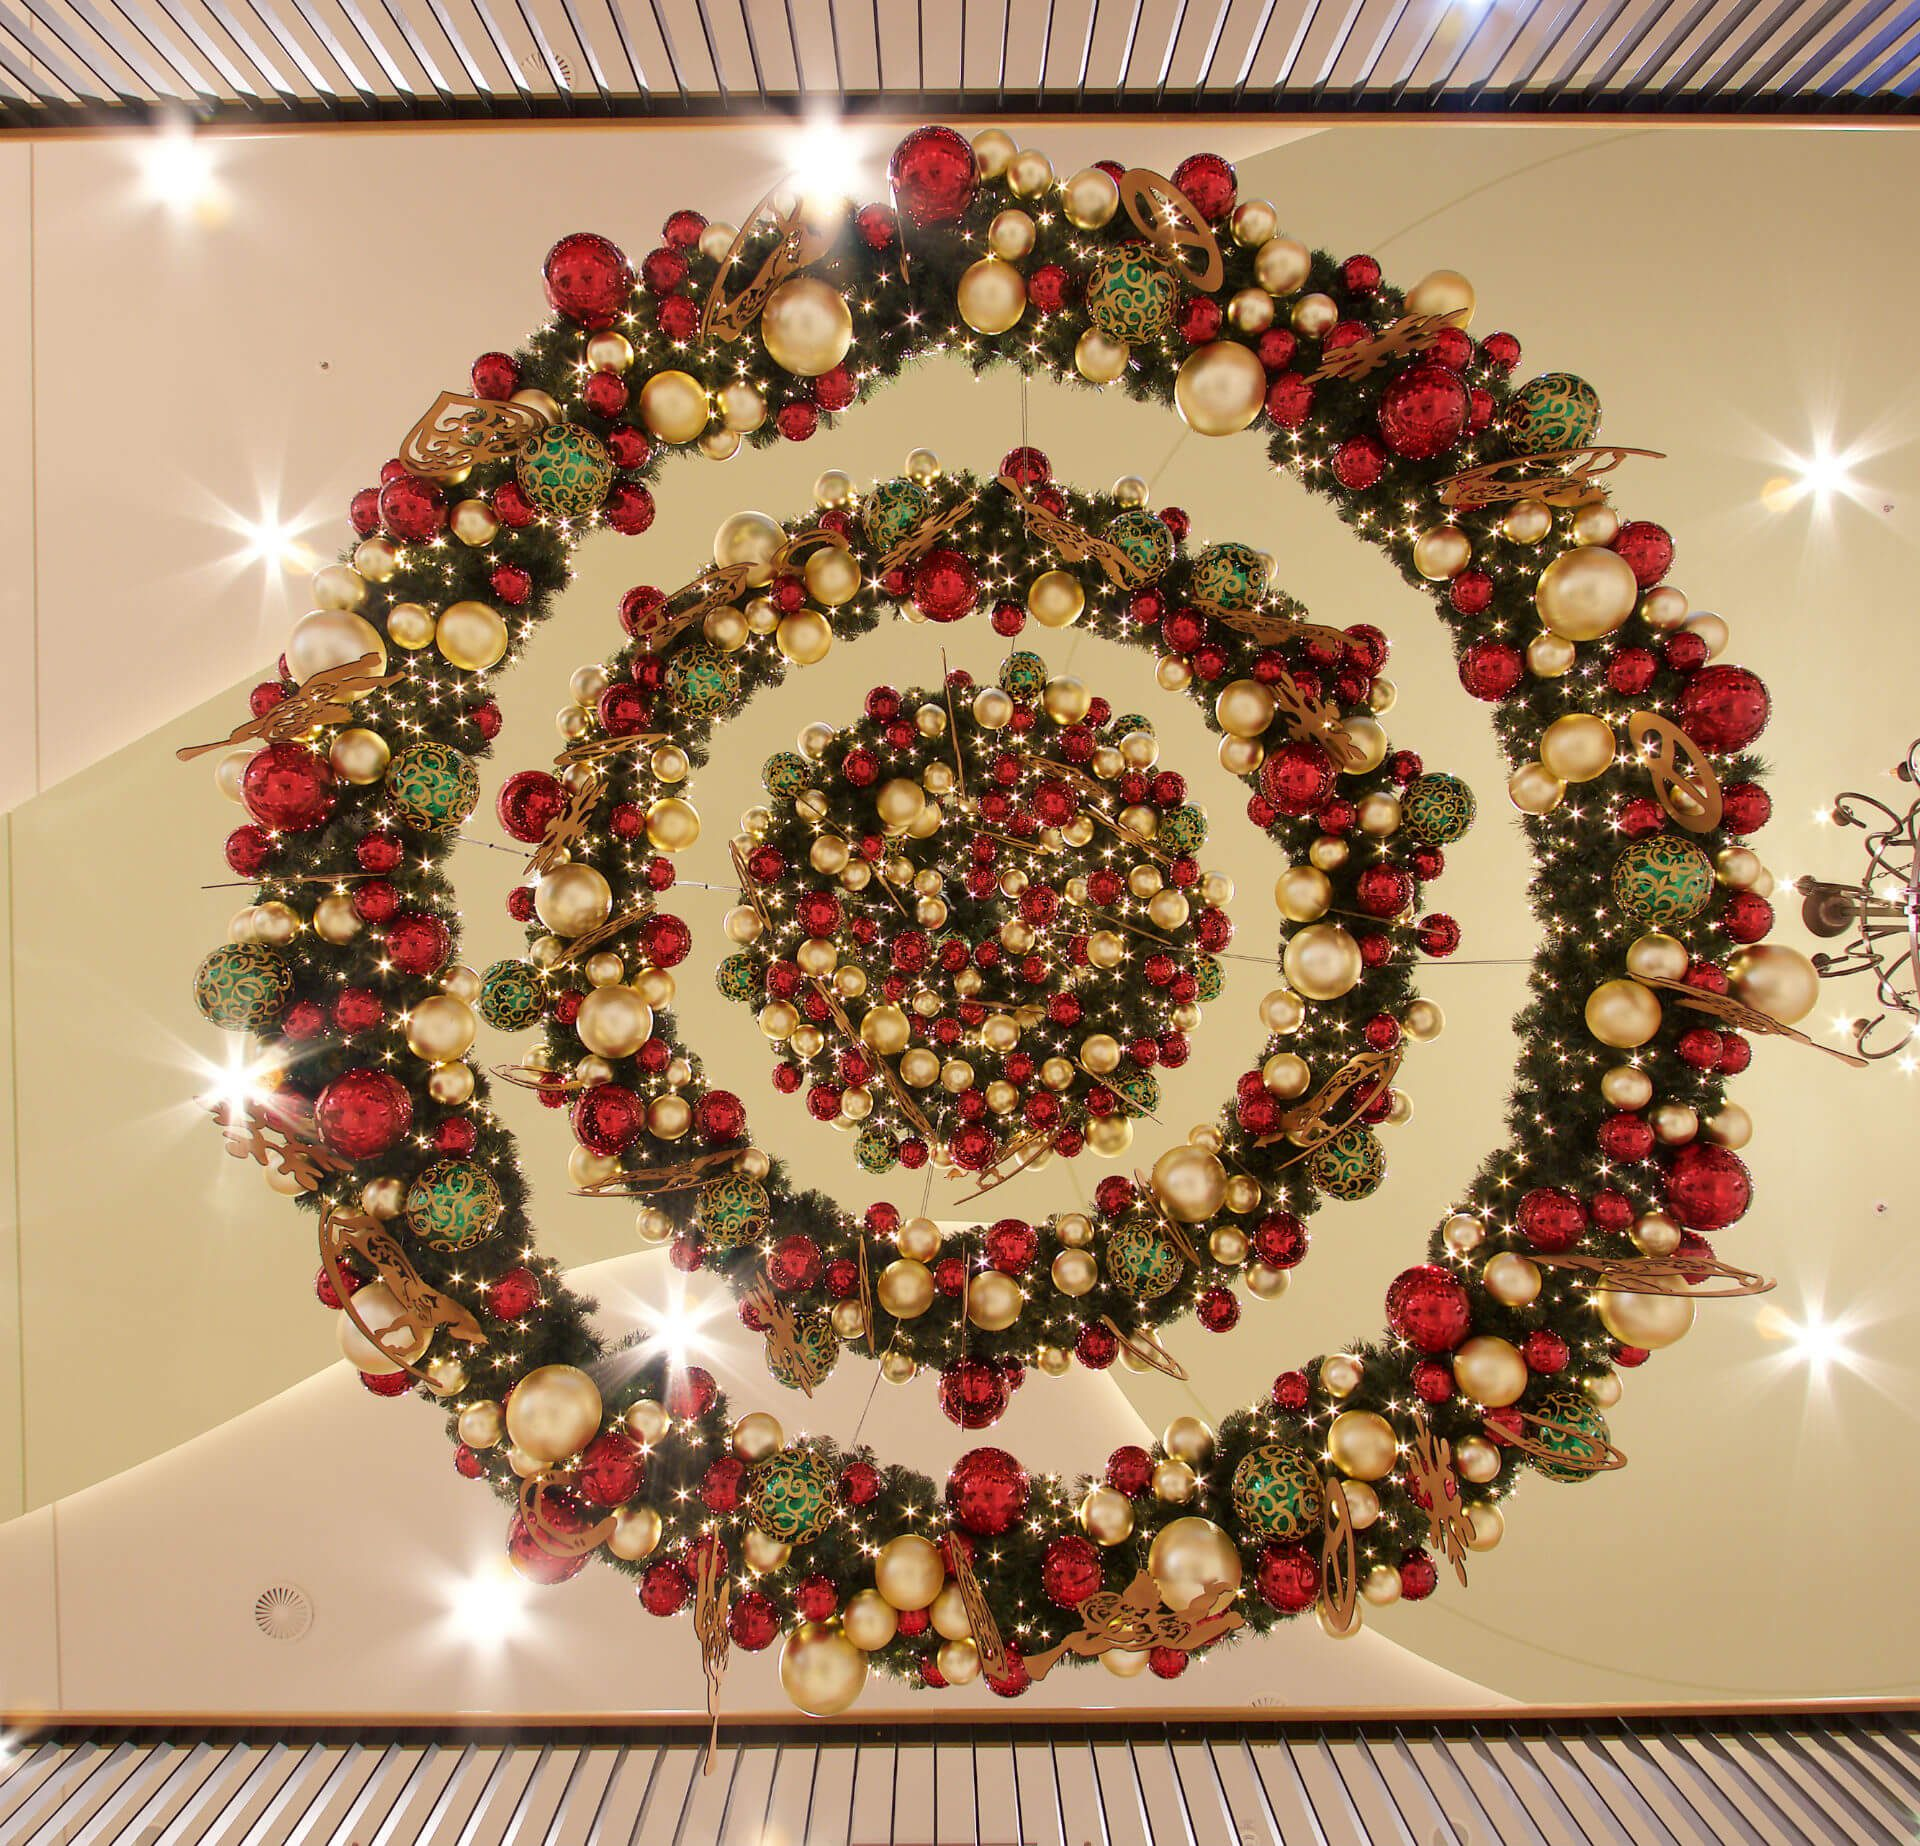 even during the daylight hours incorporating lighting and lighting effects gives giant wreaths sparkle and combining green wreaths with lights creates - Giant Christmas Hours